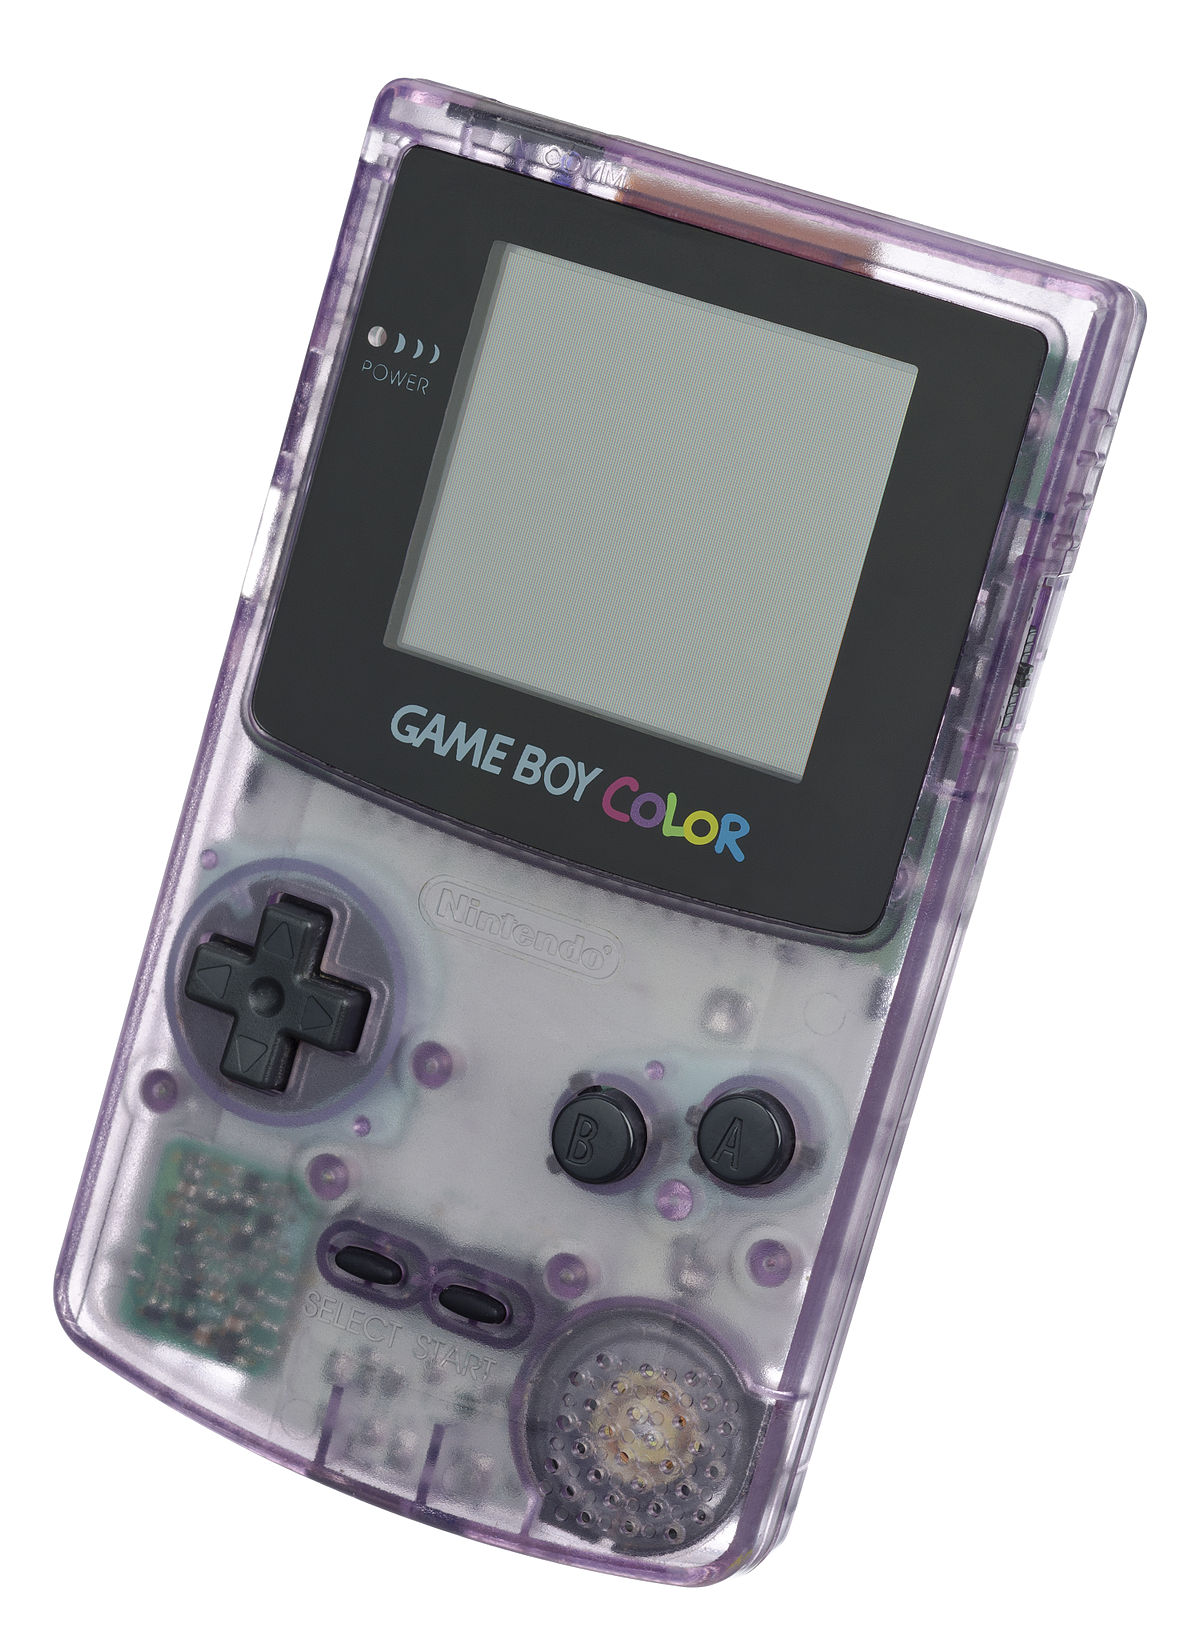 game boy color wikipedia - Picture Of A Boy To Color